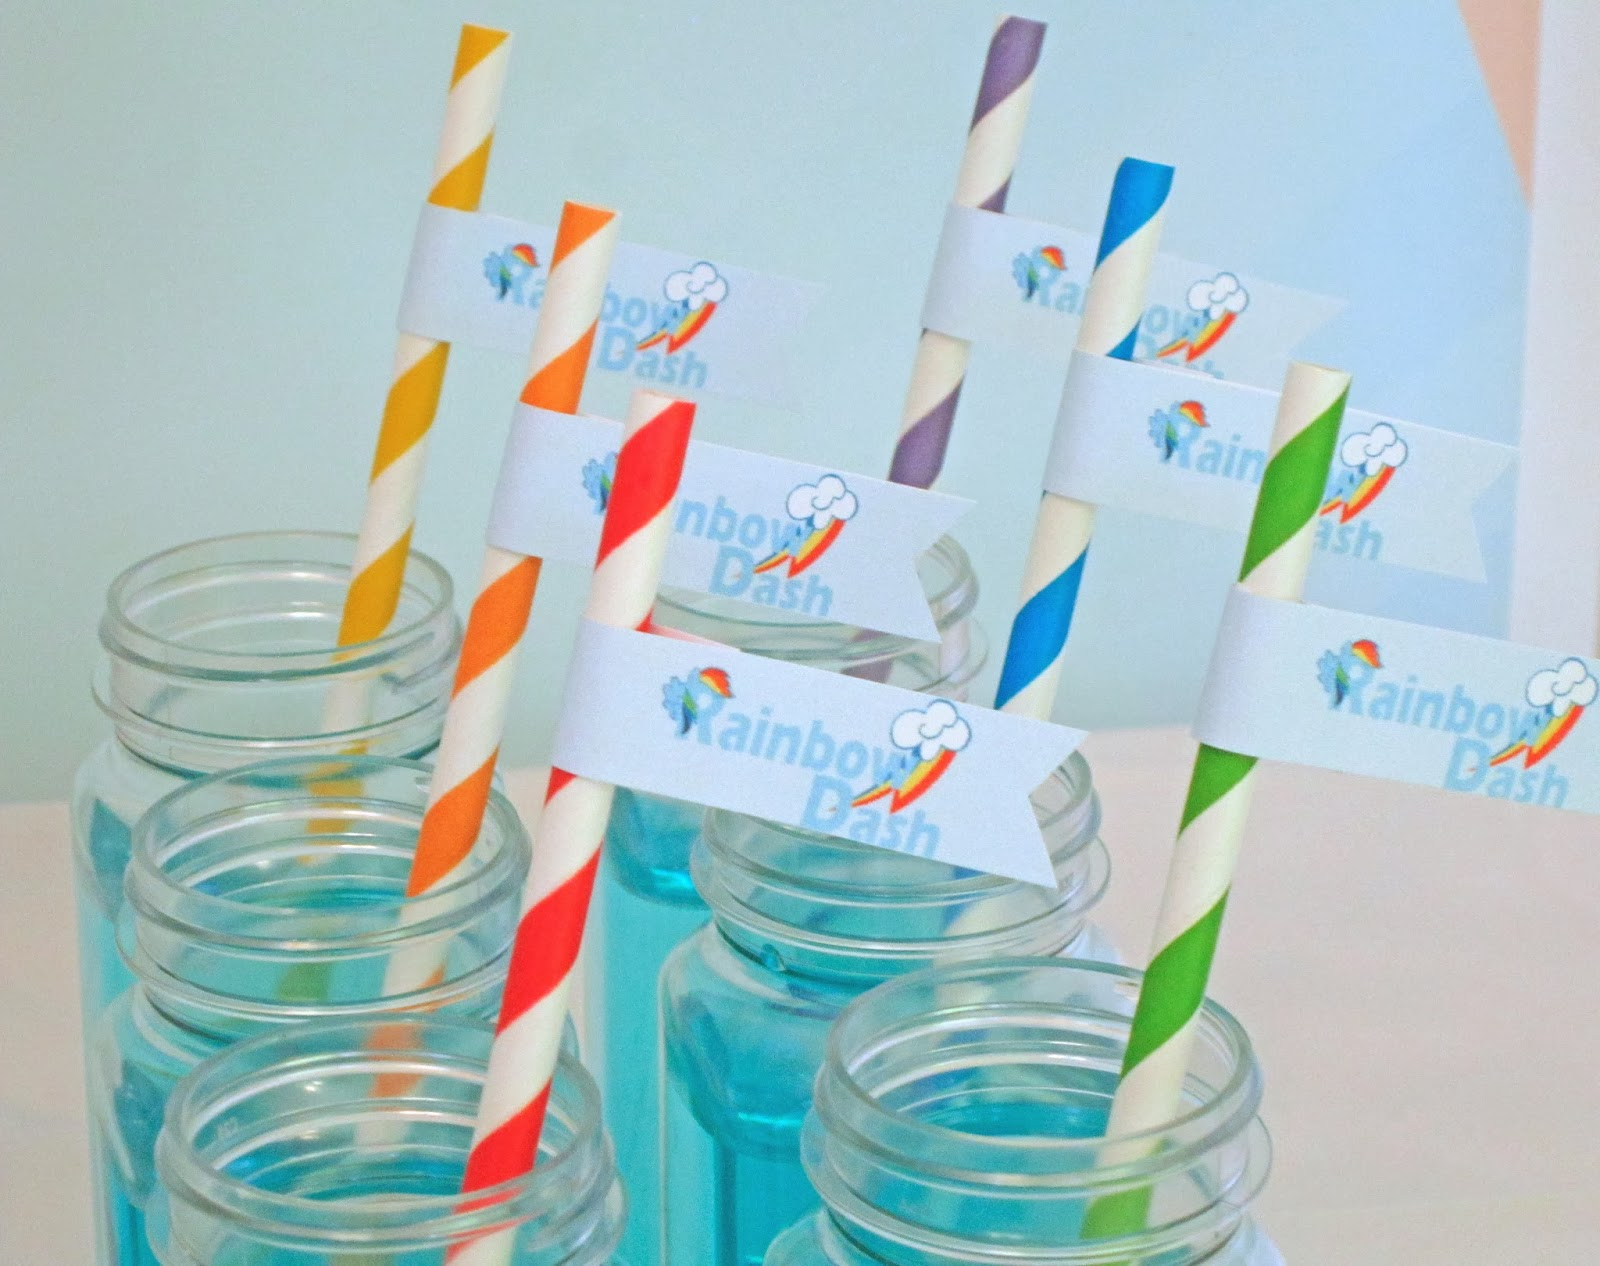 We also served Raindrop Drinks with rainbow striped straws and flags ...